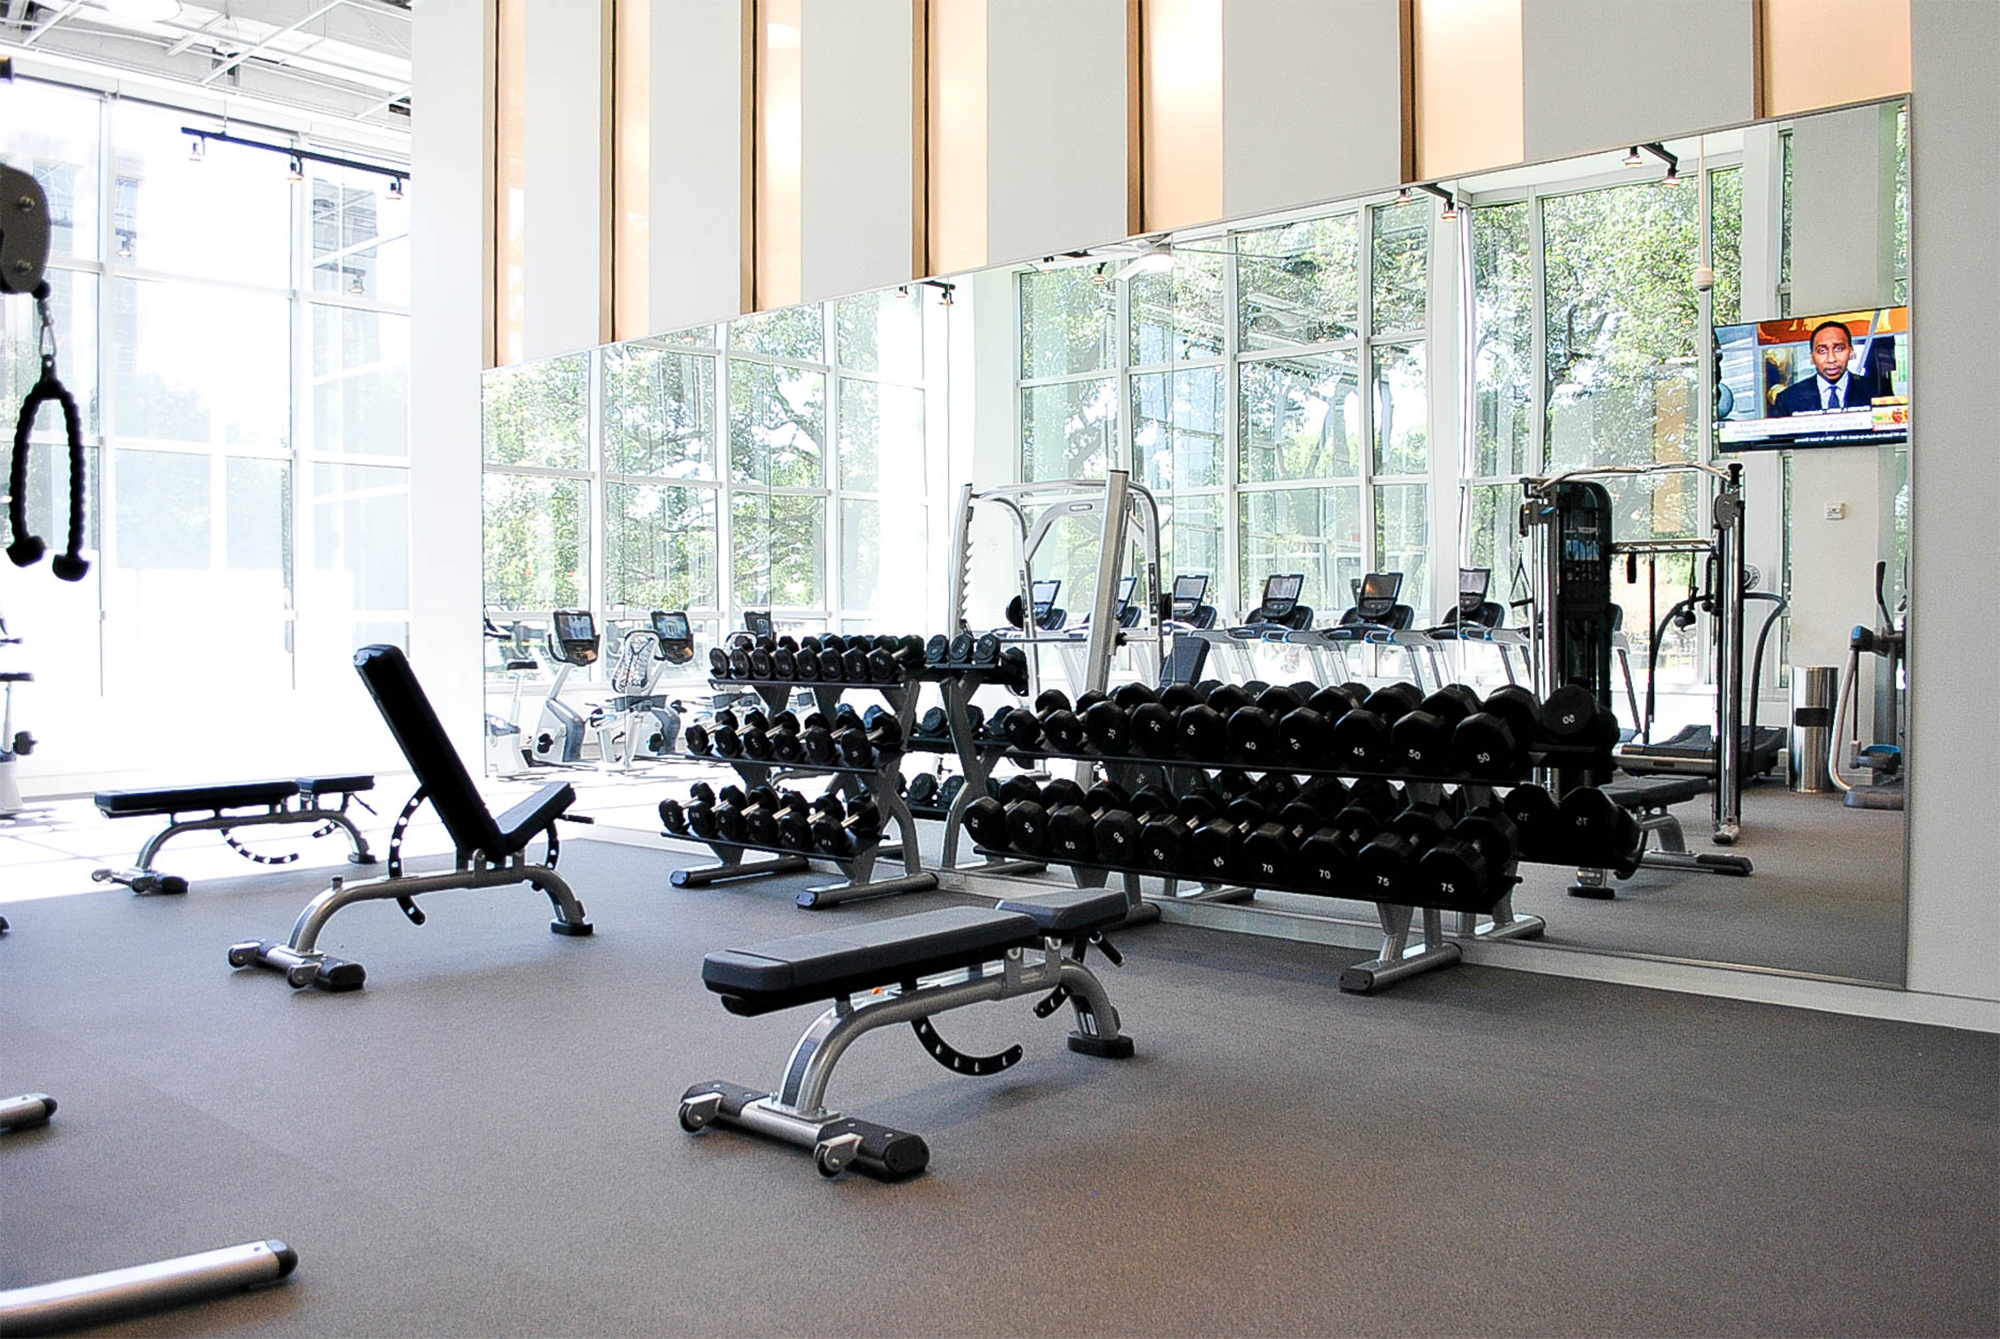 Fitness center at williams tower